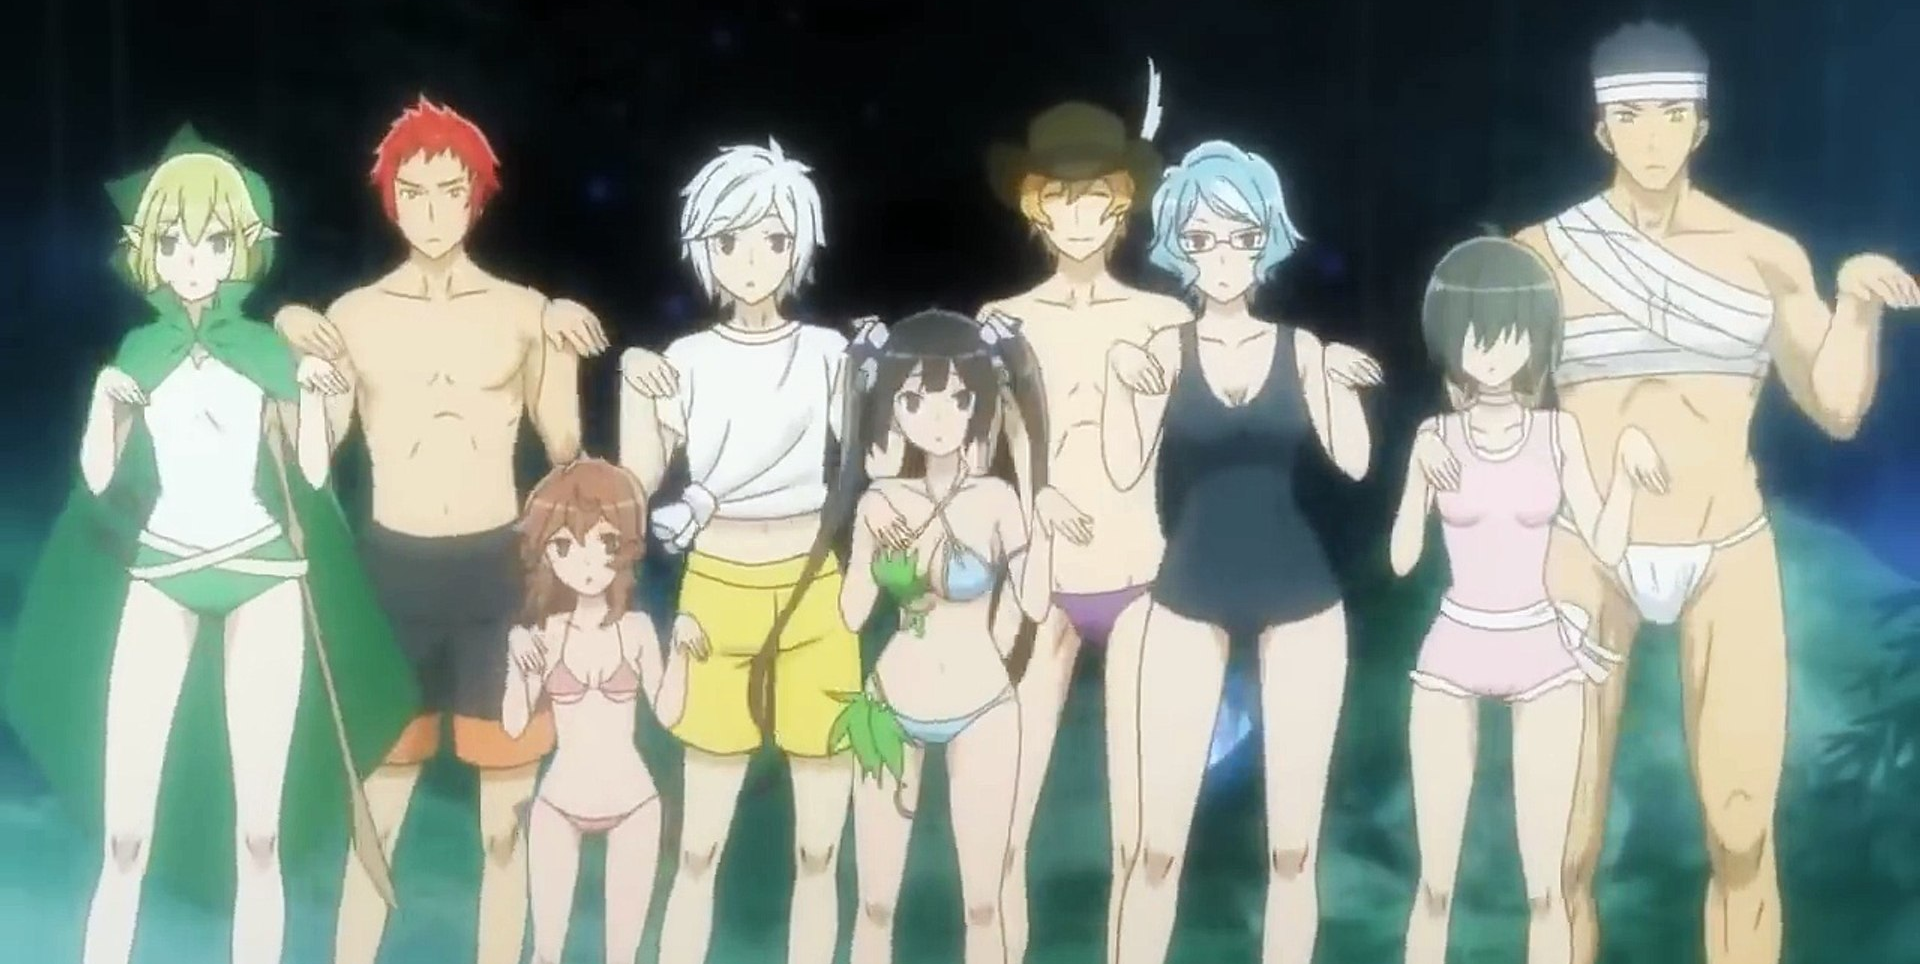 Xem phim Dungeon ni Deai wo Motomeru no wa Machigatteiru Darou ka II OVA - DanMachi II OVA, Is It Wrong to Try to Pick Up Girls in a Dungeon? II OVA Vietsub